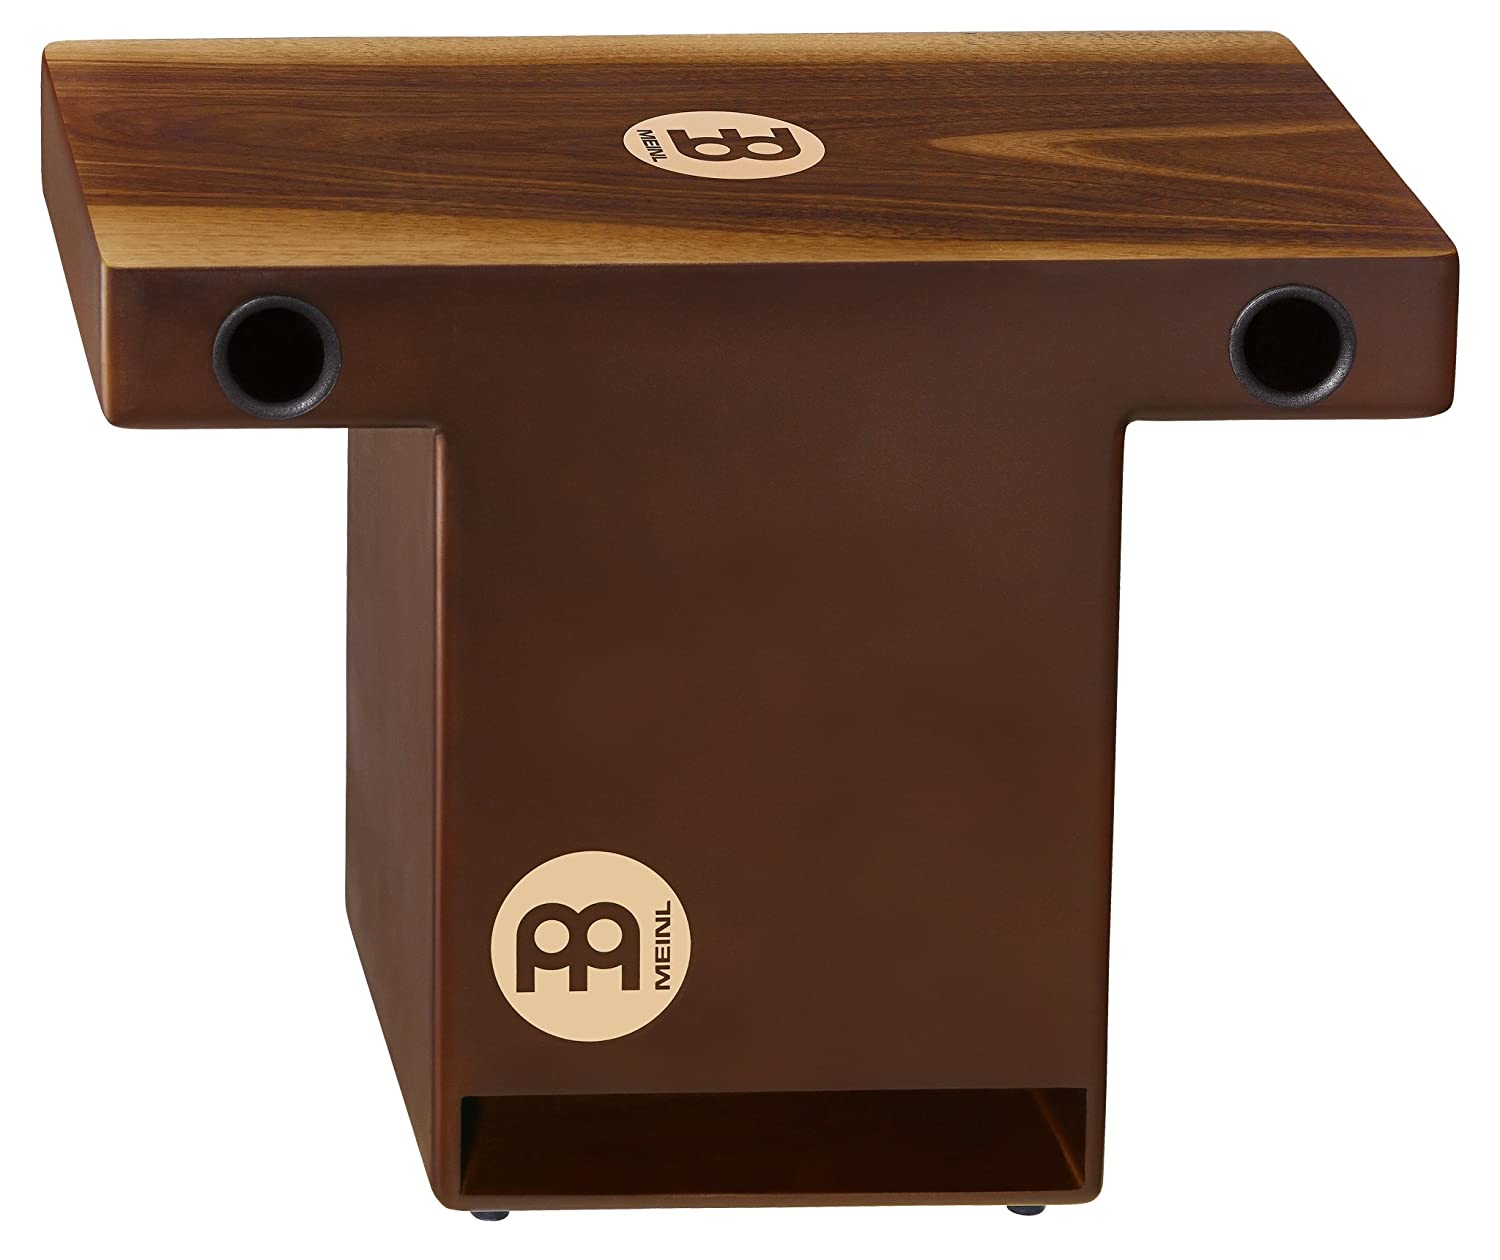 Meinl Percussion TOPCAJ2WN Turbo Walnut Slap-Top Cajon with Internal Snares and Forward Projecting Sound Ports (VIDEO)